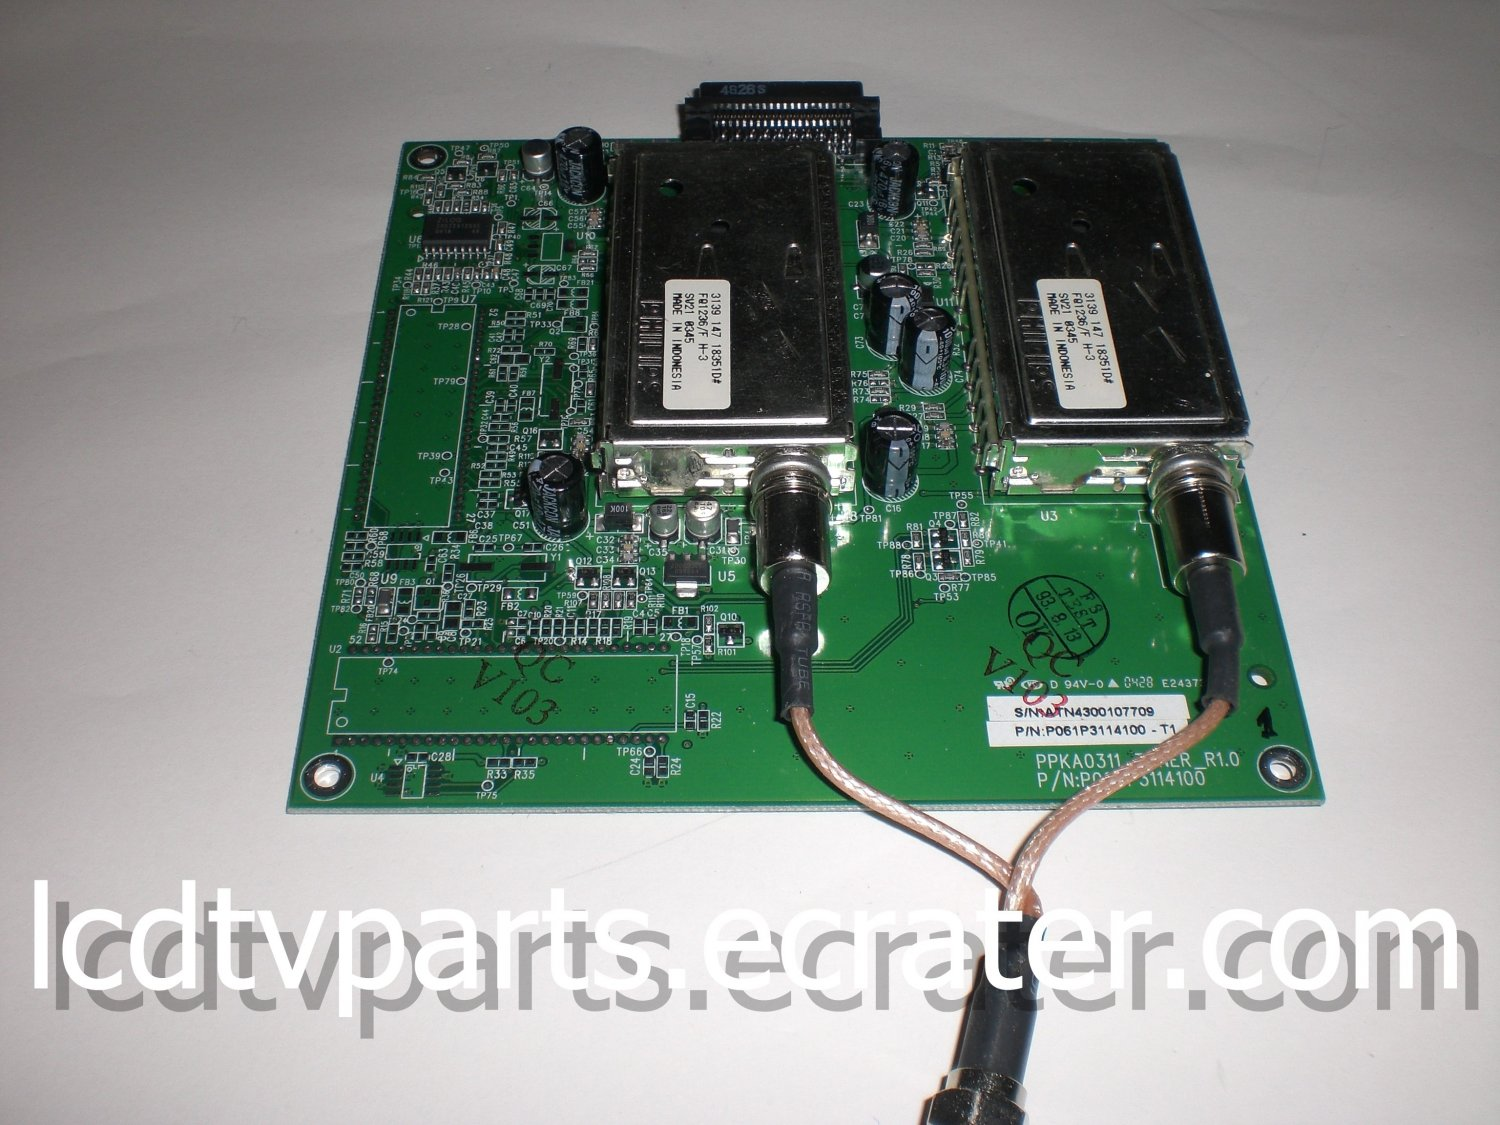 P061P3114100-T1, PPKA0311_Tuner_R1.0, ATN4300107709, Tuner Board for Olevia/Syntax LT27HV